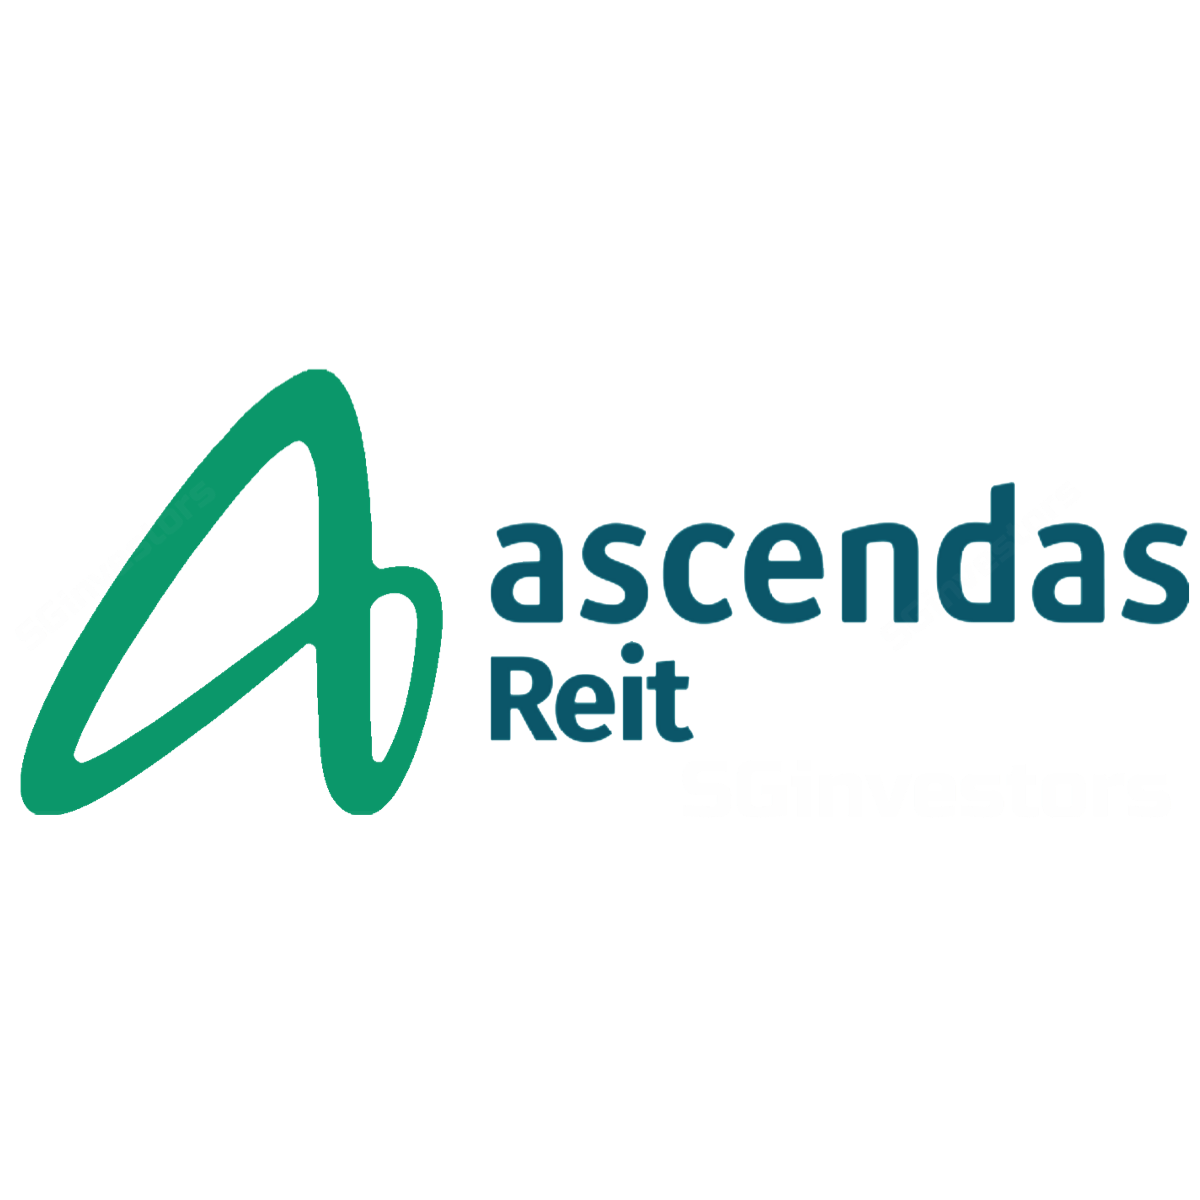 Ascendas REIT - RHB Invest 2017-10-31: Well Positioned For An Industrial Sector Rebound